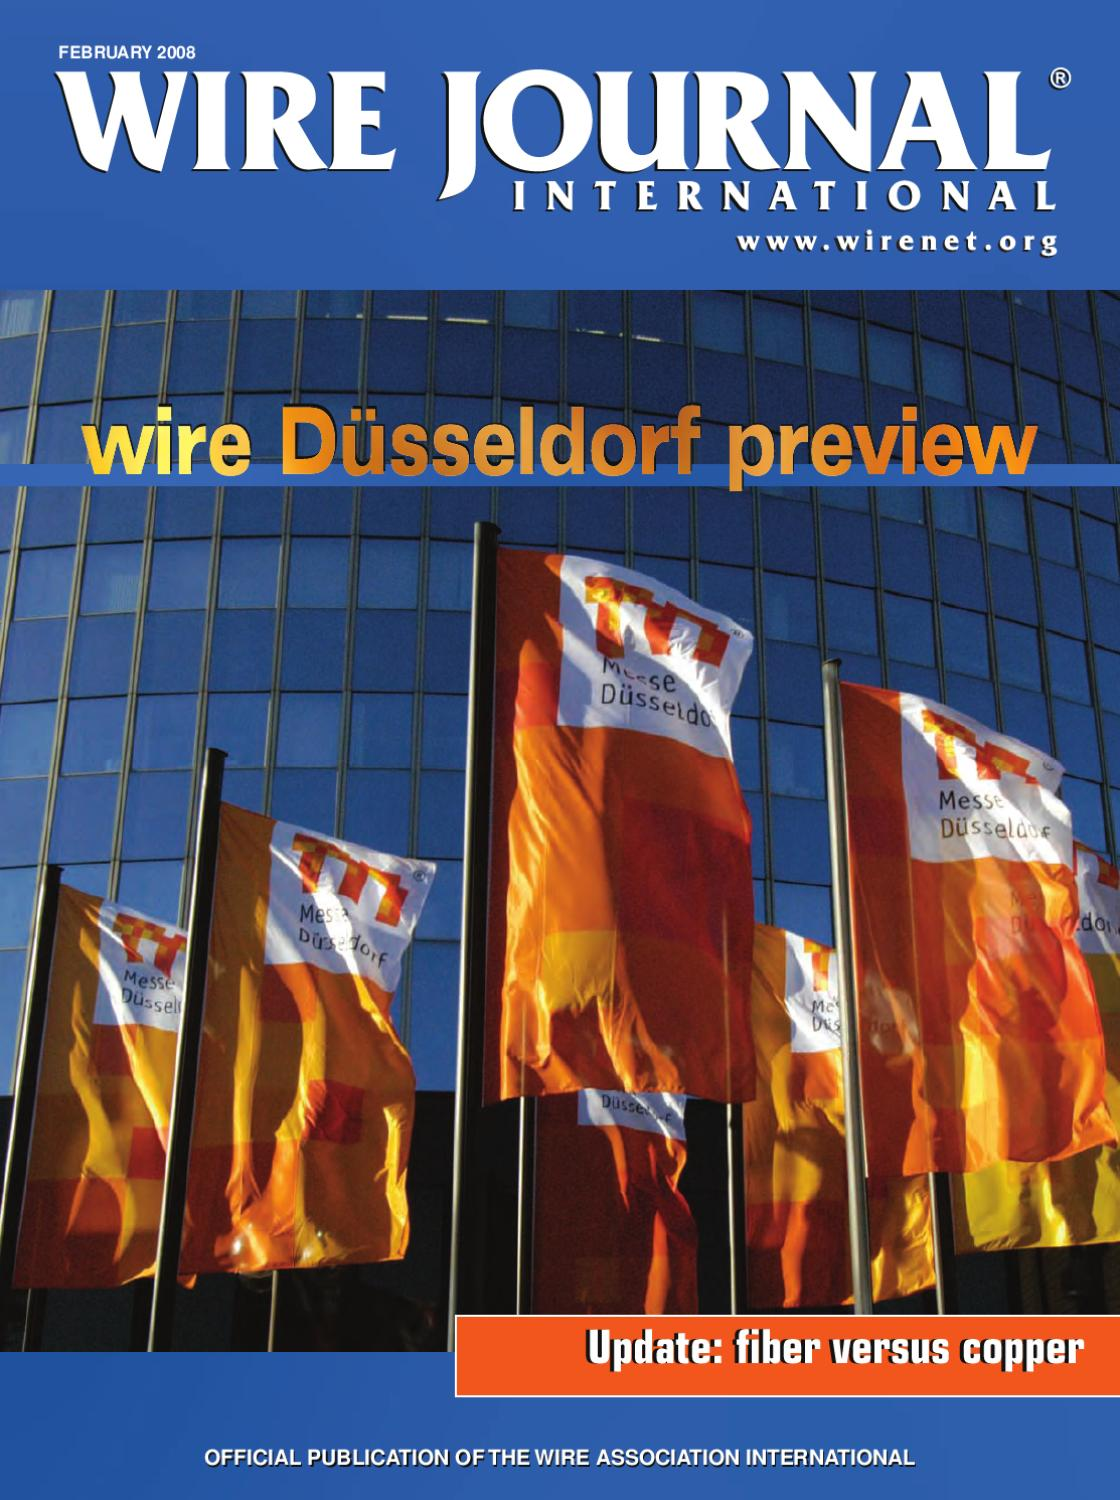 wire Dusseldorf preview by Wire Journal International, Inc. - issuu